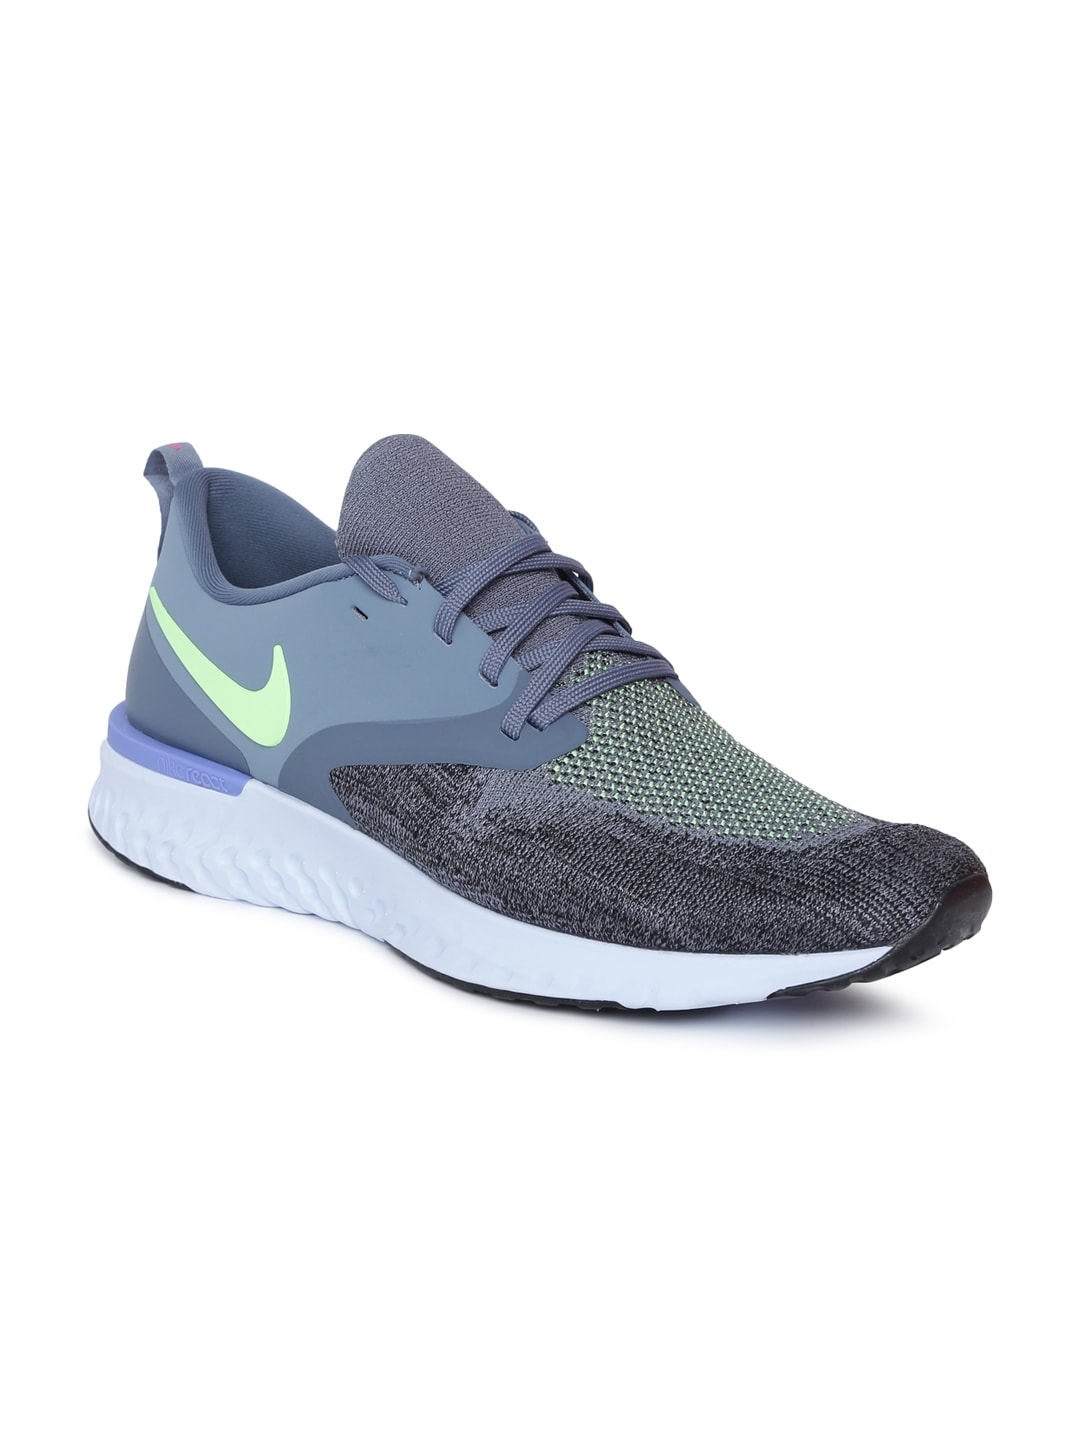 398a2aa420daf8 Nike Shoes - Buy Nike Shoes for Men   Women Online